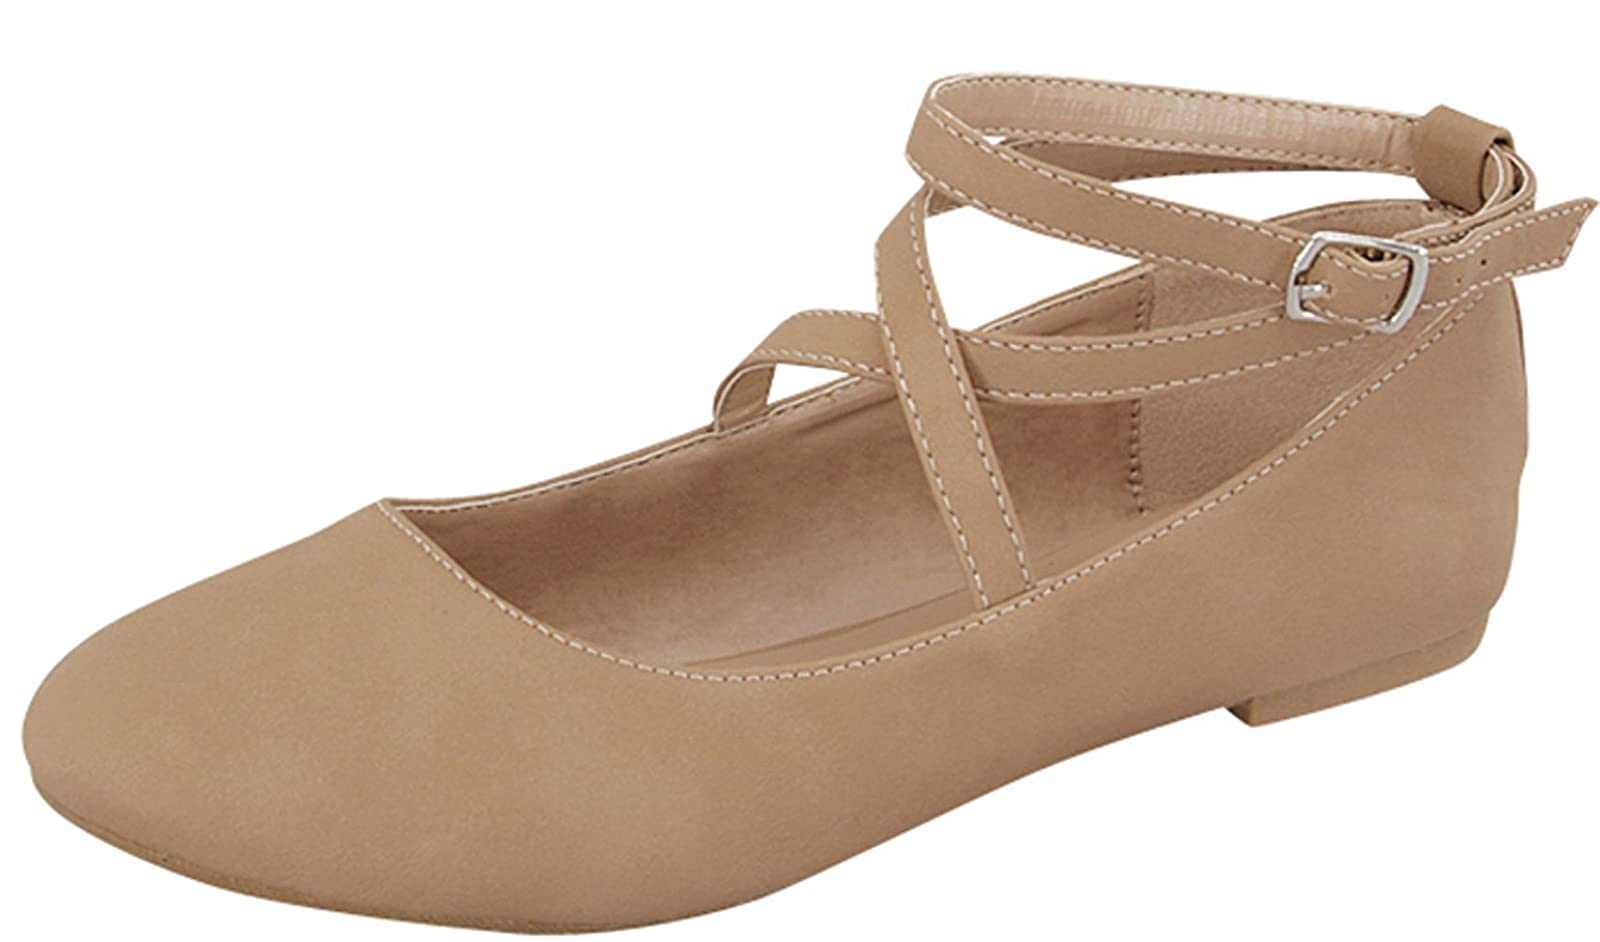 9992cc3c2a16 HQ Images of Top Moda Women s Brea-3 Strappy Ballet Flat